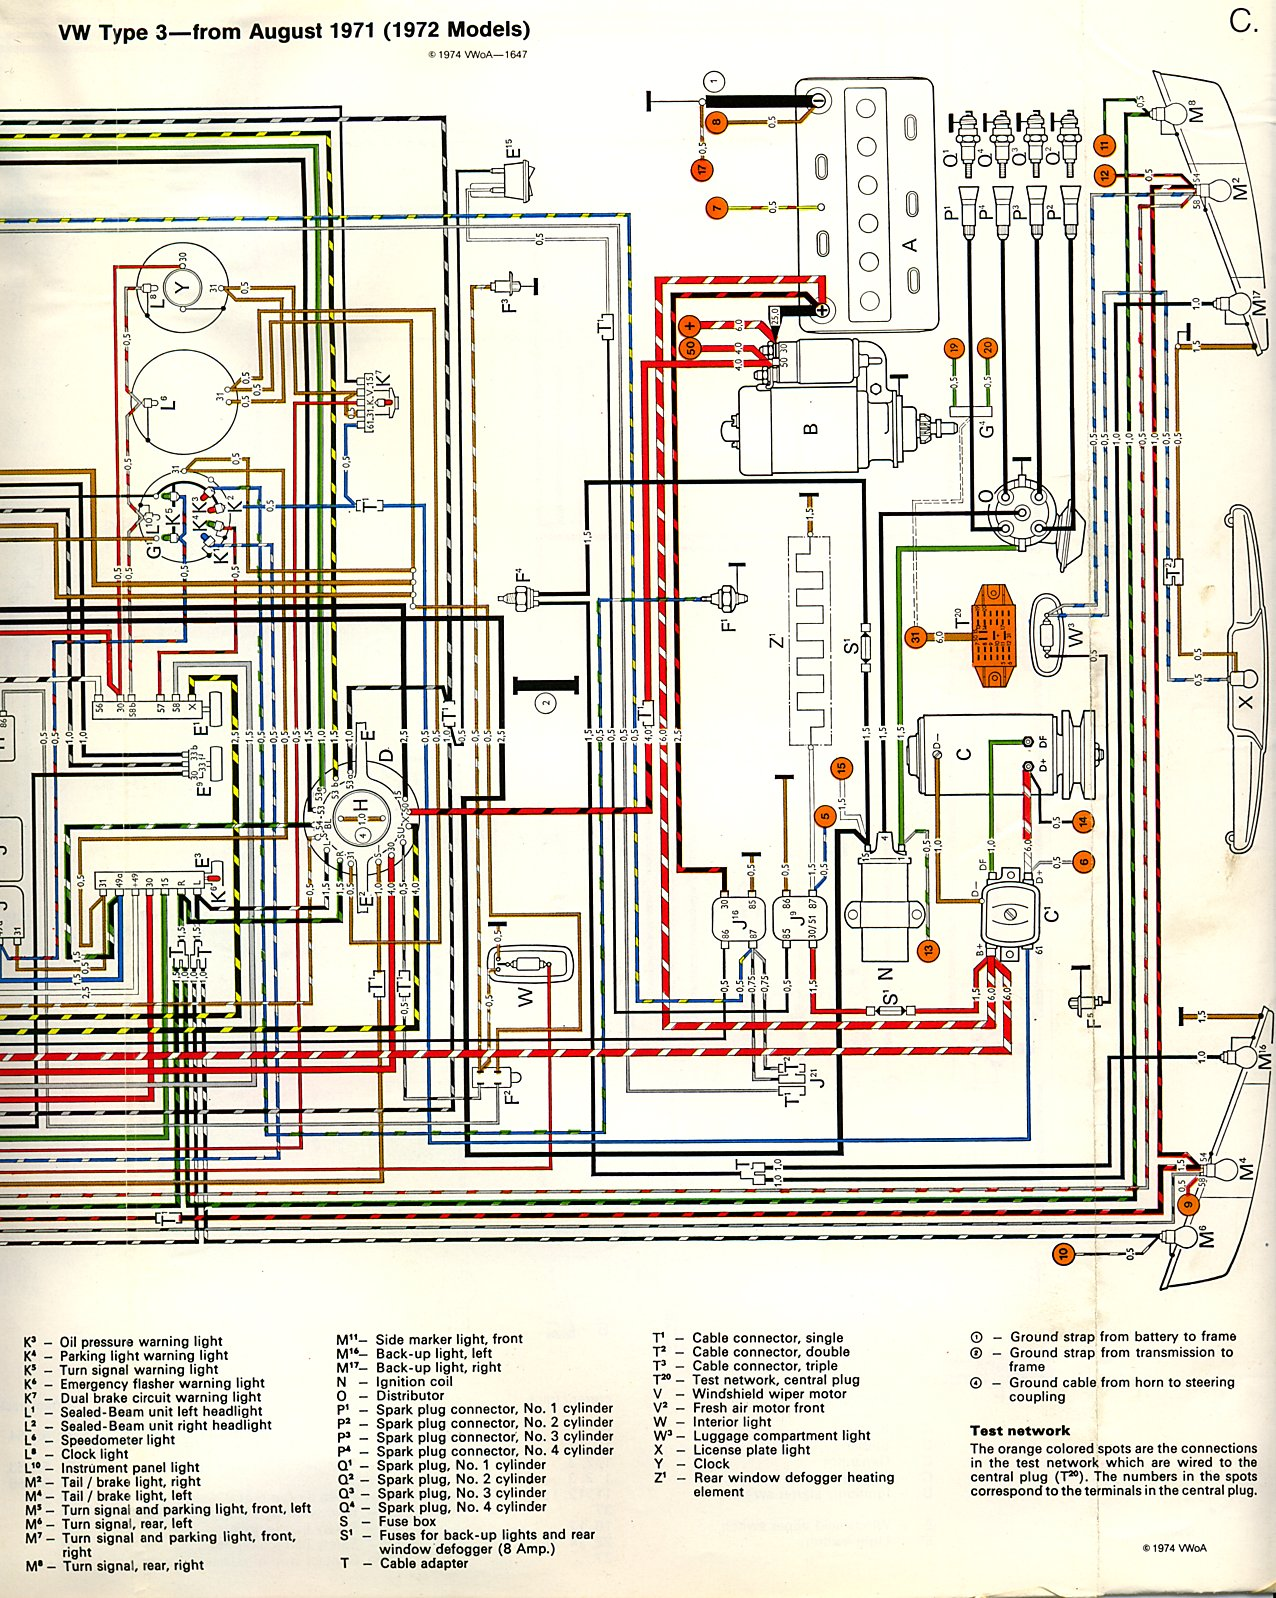 hight resolution of thesamba com type 3 wiring diagrams rh thesamba com 1964 vw headlight switch wiring vw type